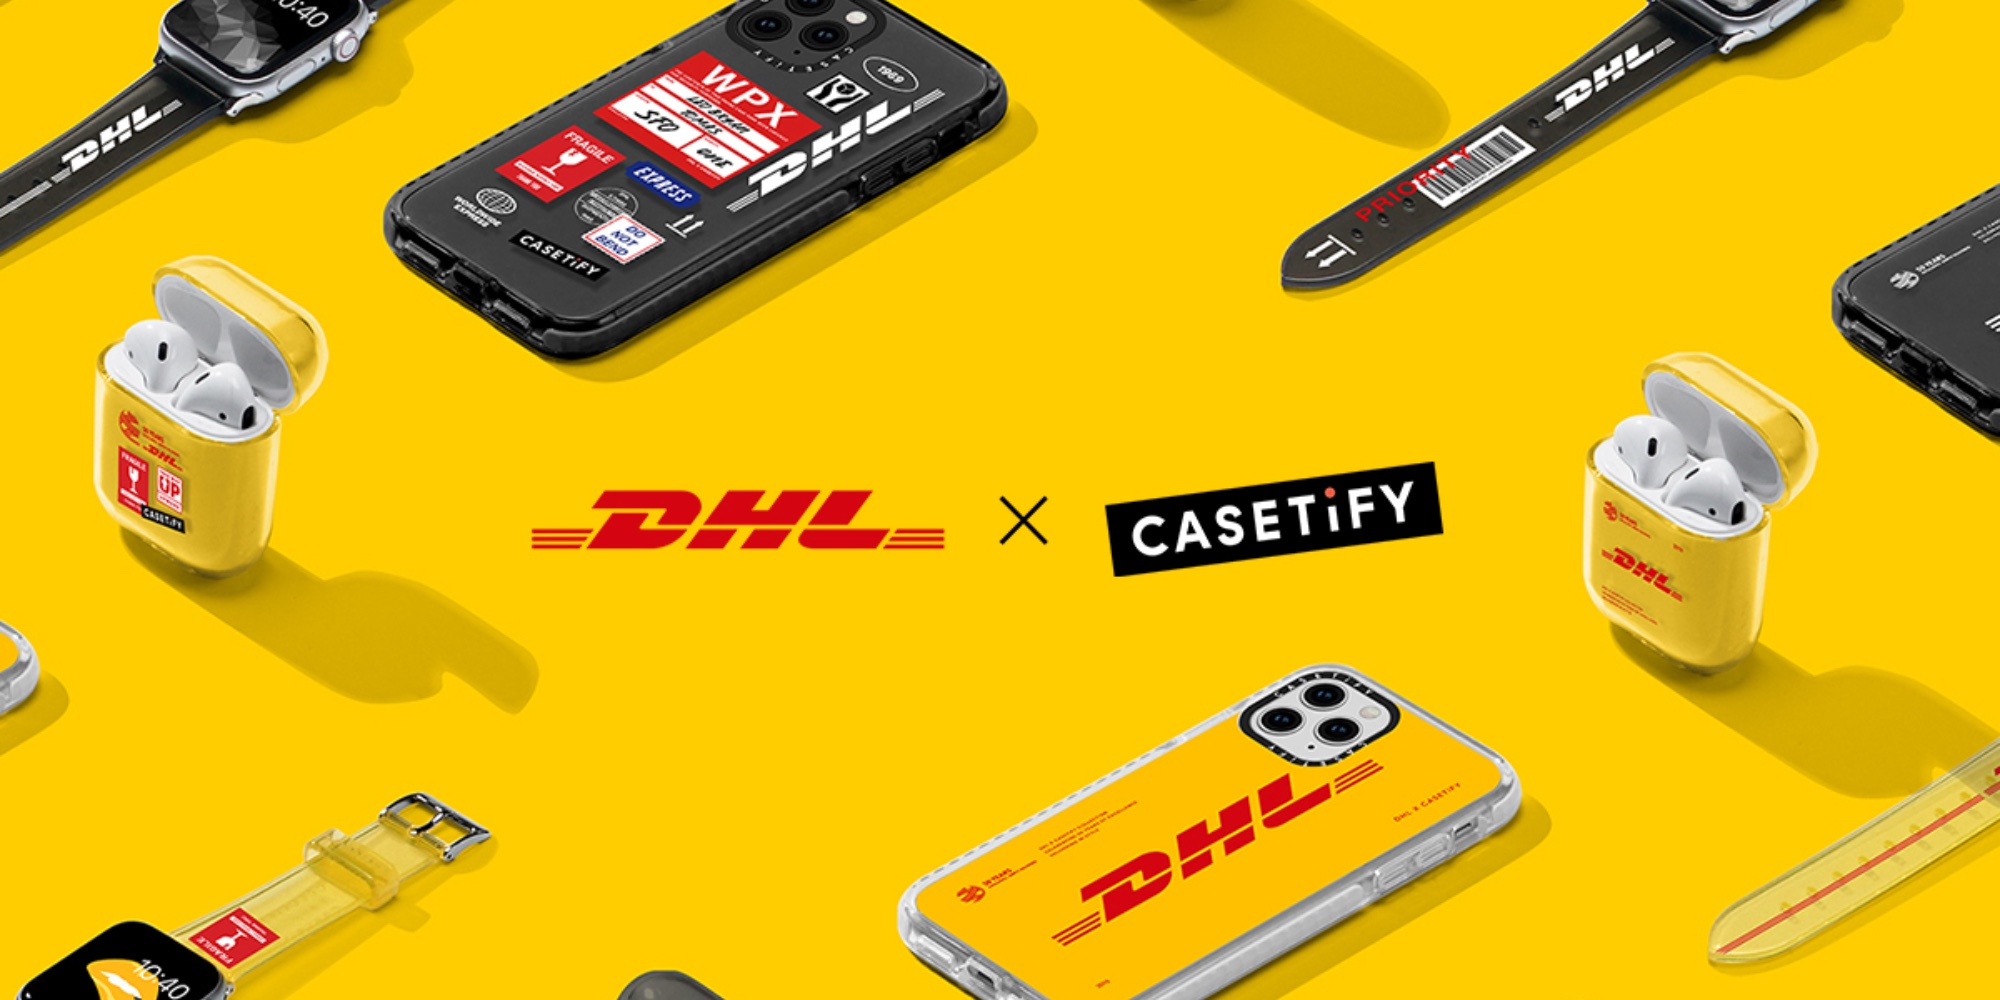 CASETiFY partners with DHL for a new line of iPhone accessories and more